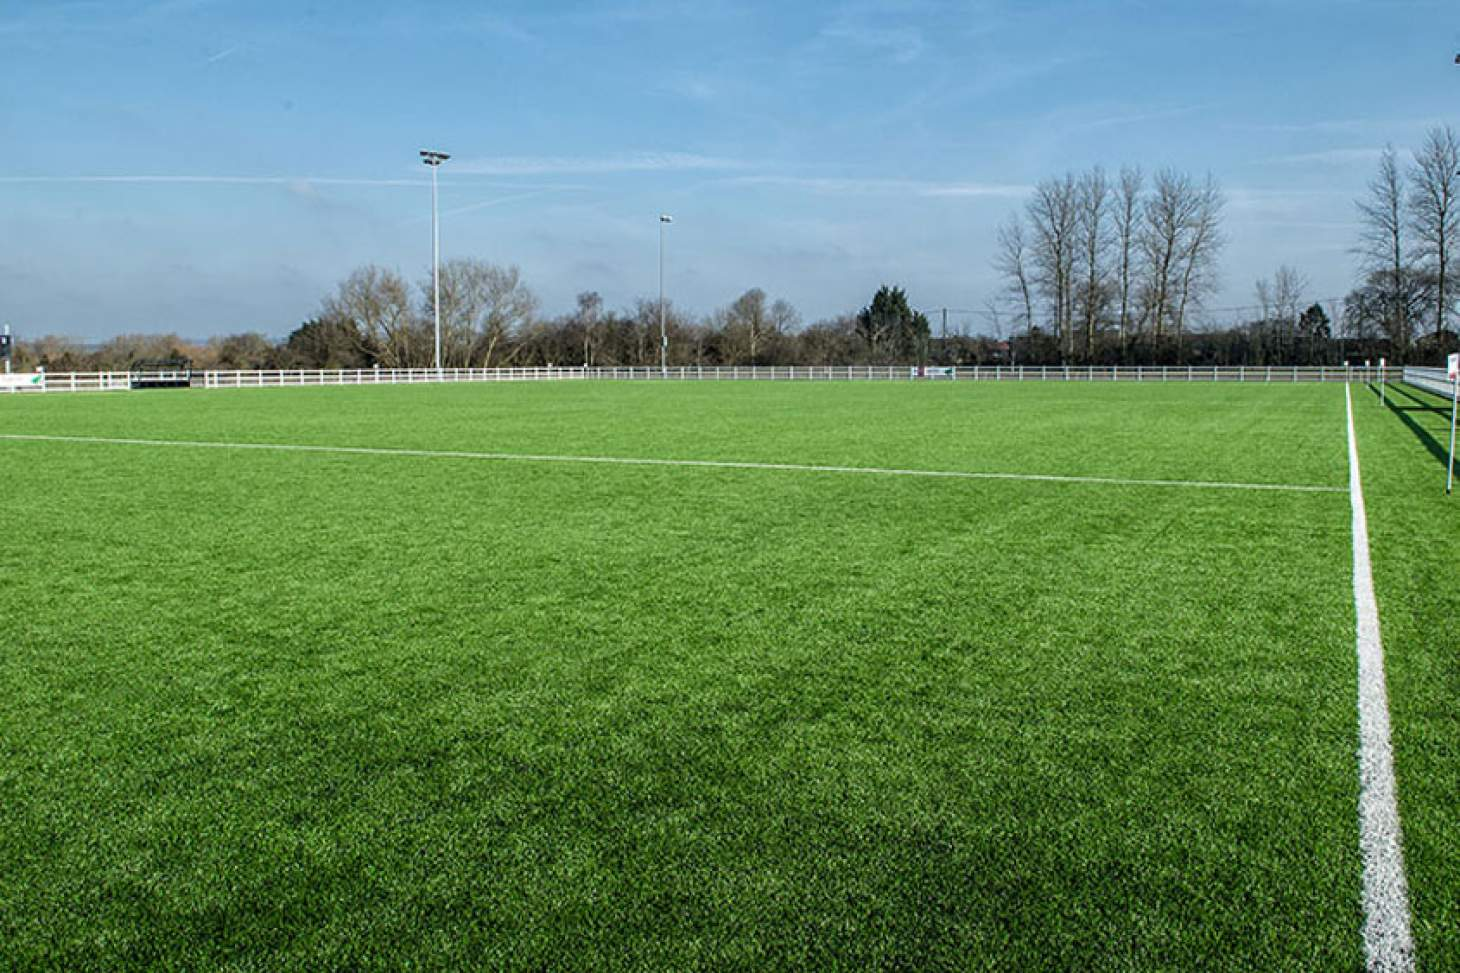 PlayFootball Horsham 8 a side | 3G Astroturf football pitch